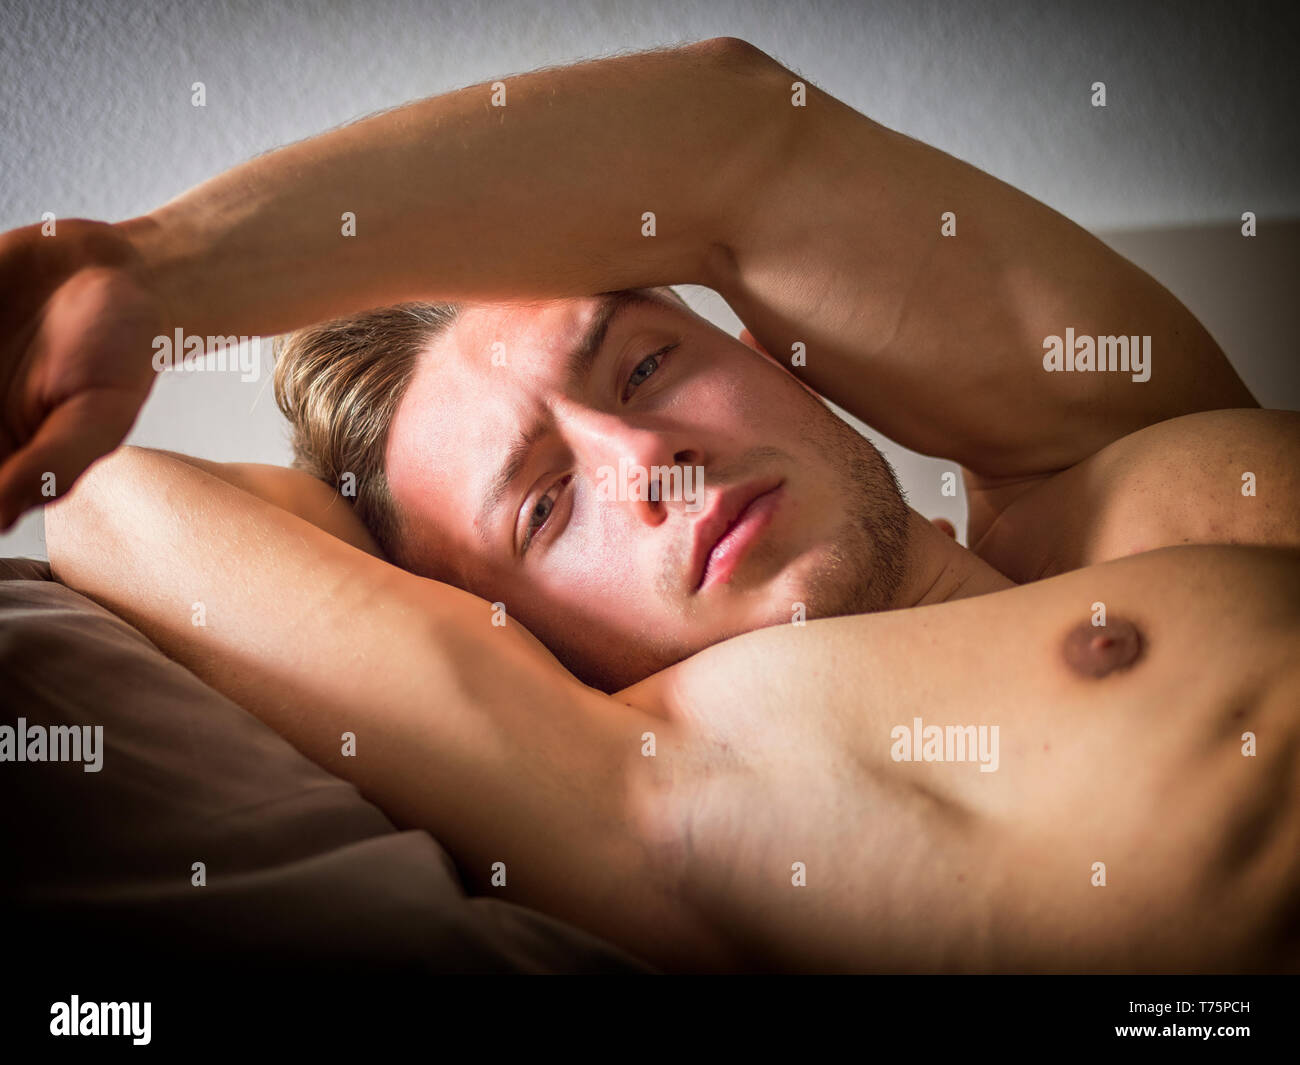 Shirtless sexy male model lying alone on his bed in his bedroom, looking at camera with a seductive attitude Stock Photo